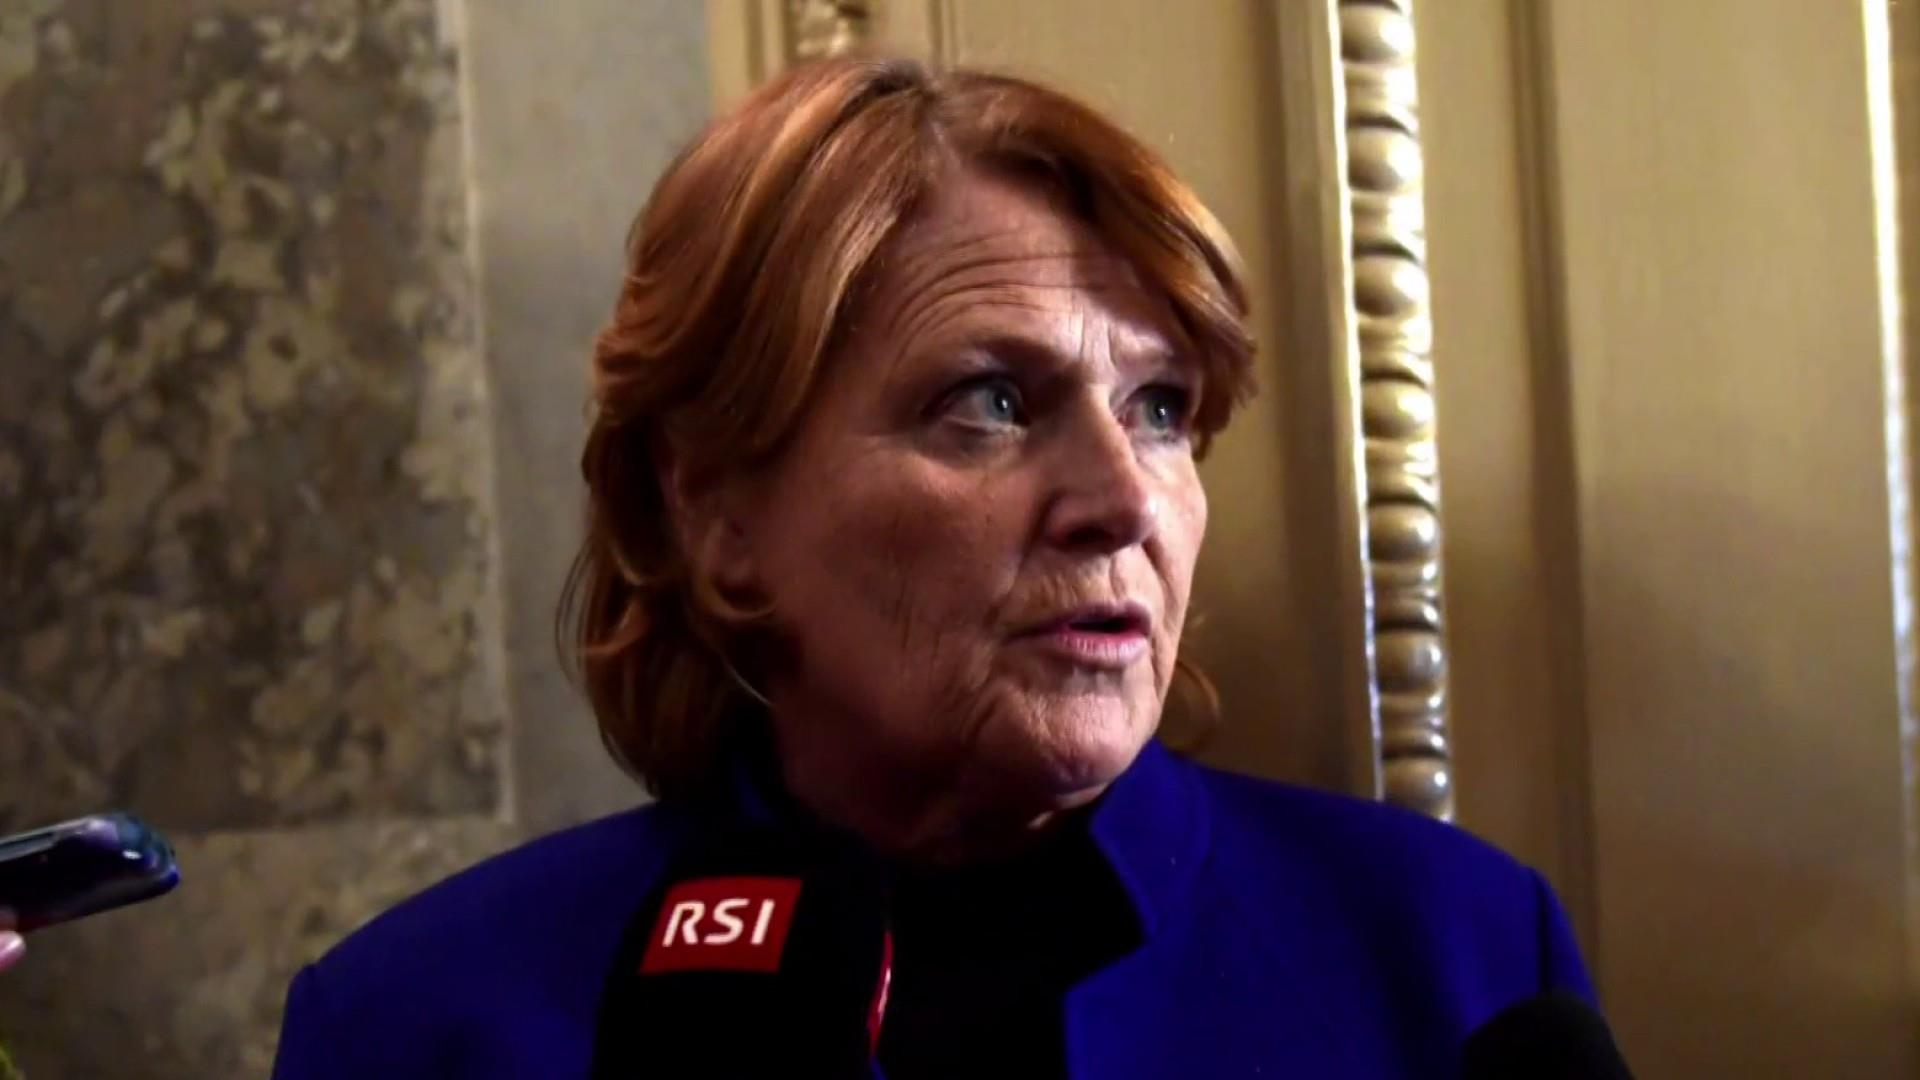 Lawrence: Heidi Heitkamp shows us a profile in courage